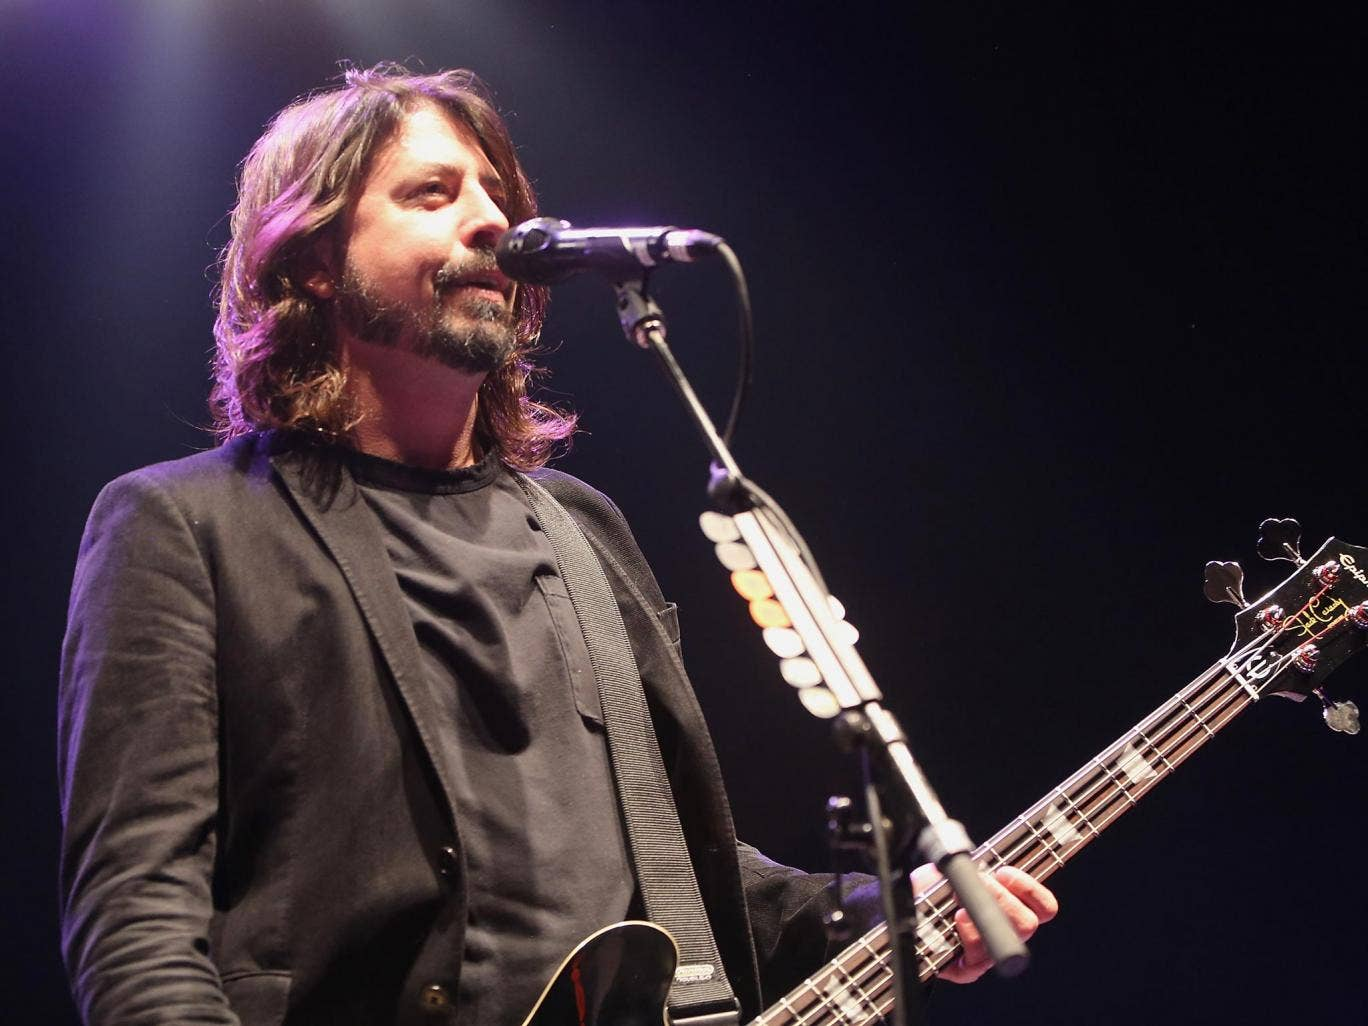 Foo Fighters frontman Dave Grohl will be directing the HBO mini series that will chronicle the recording of the band's new album